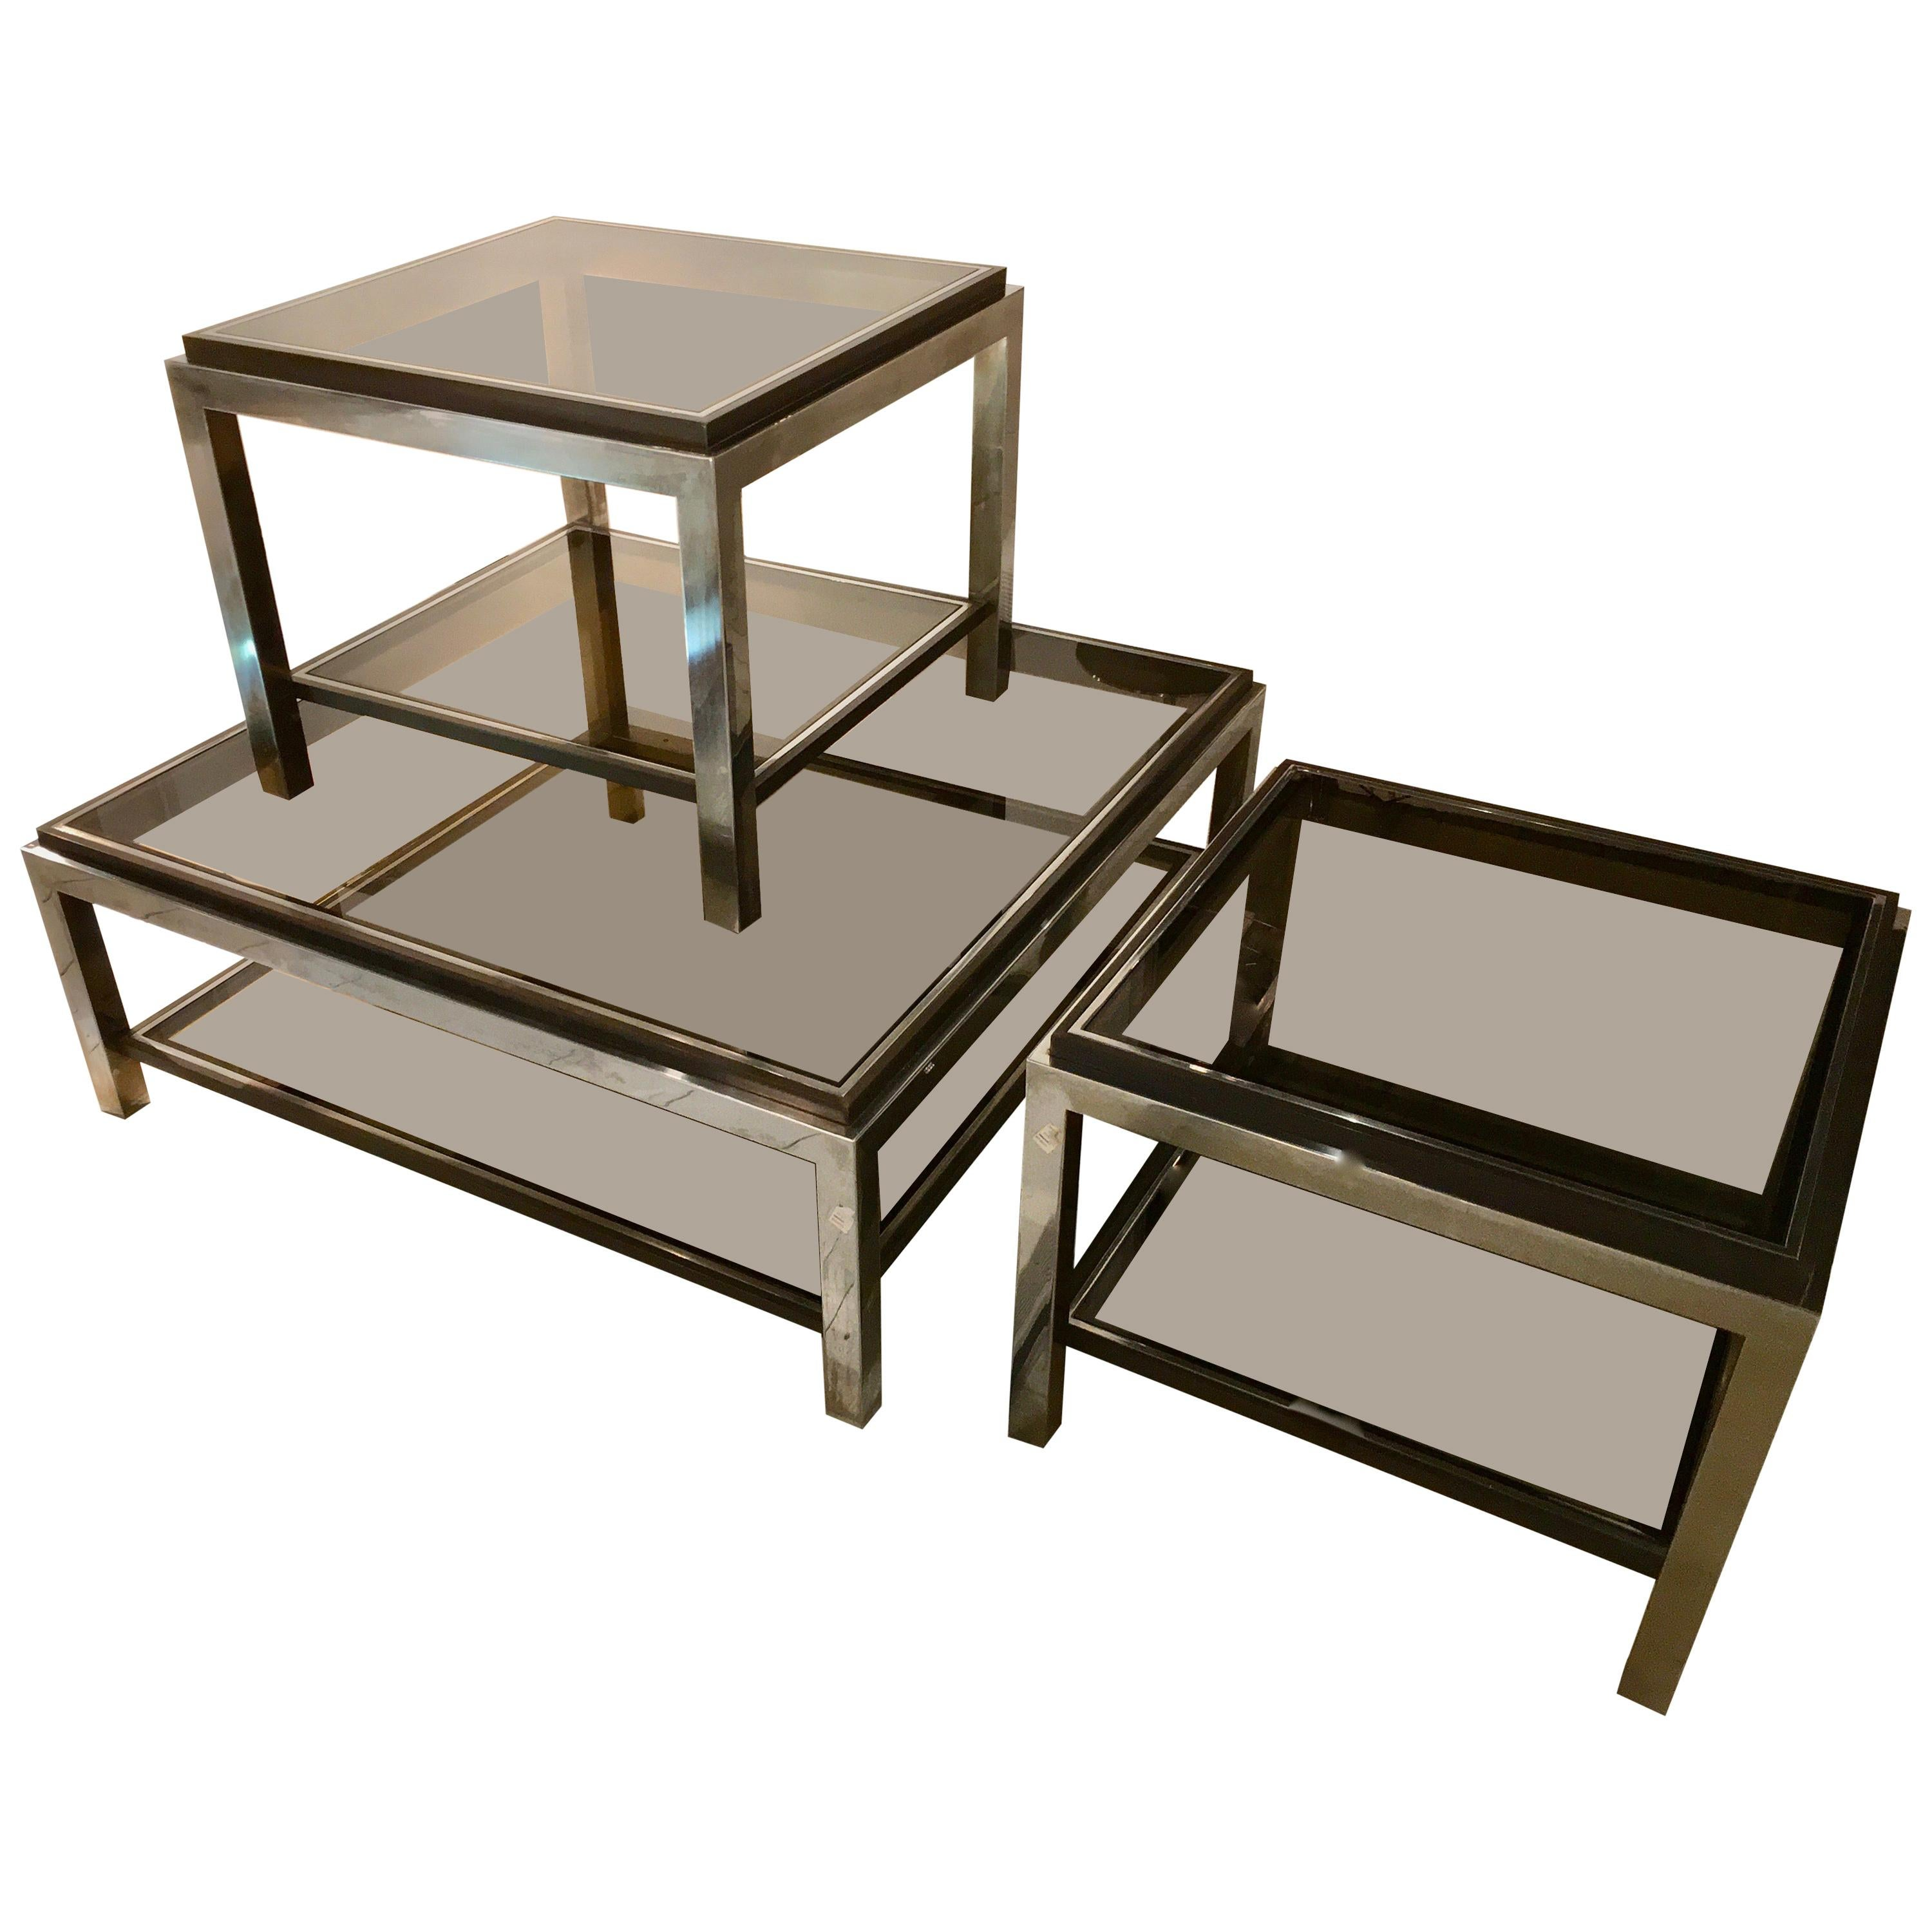 Set of Three Two-Tiers Side Tables by Willy Rizzo, France, 1970